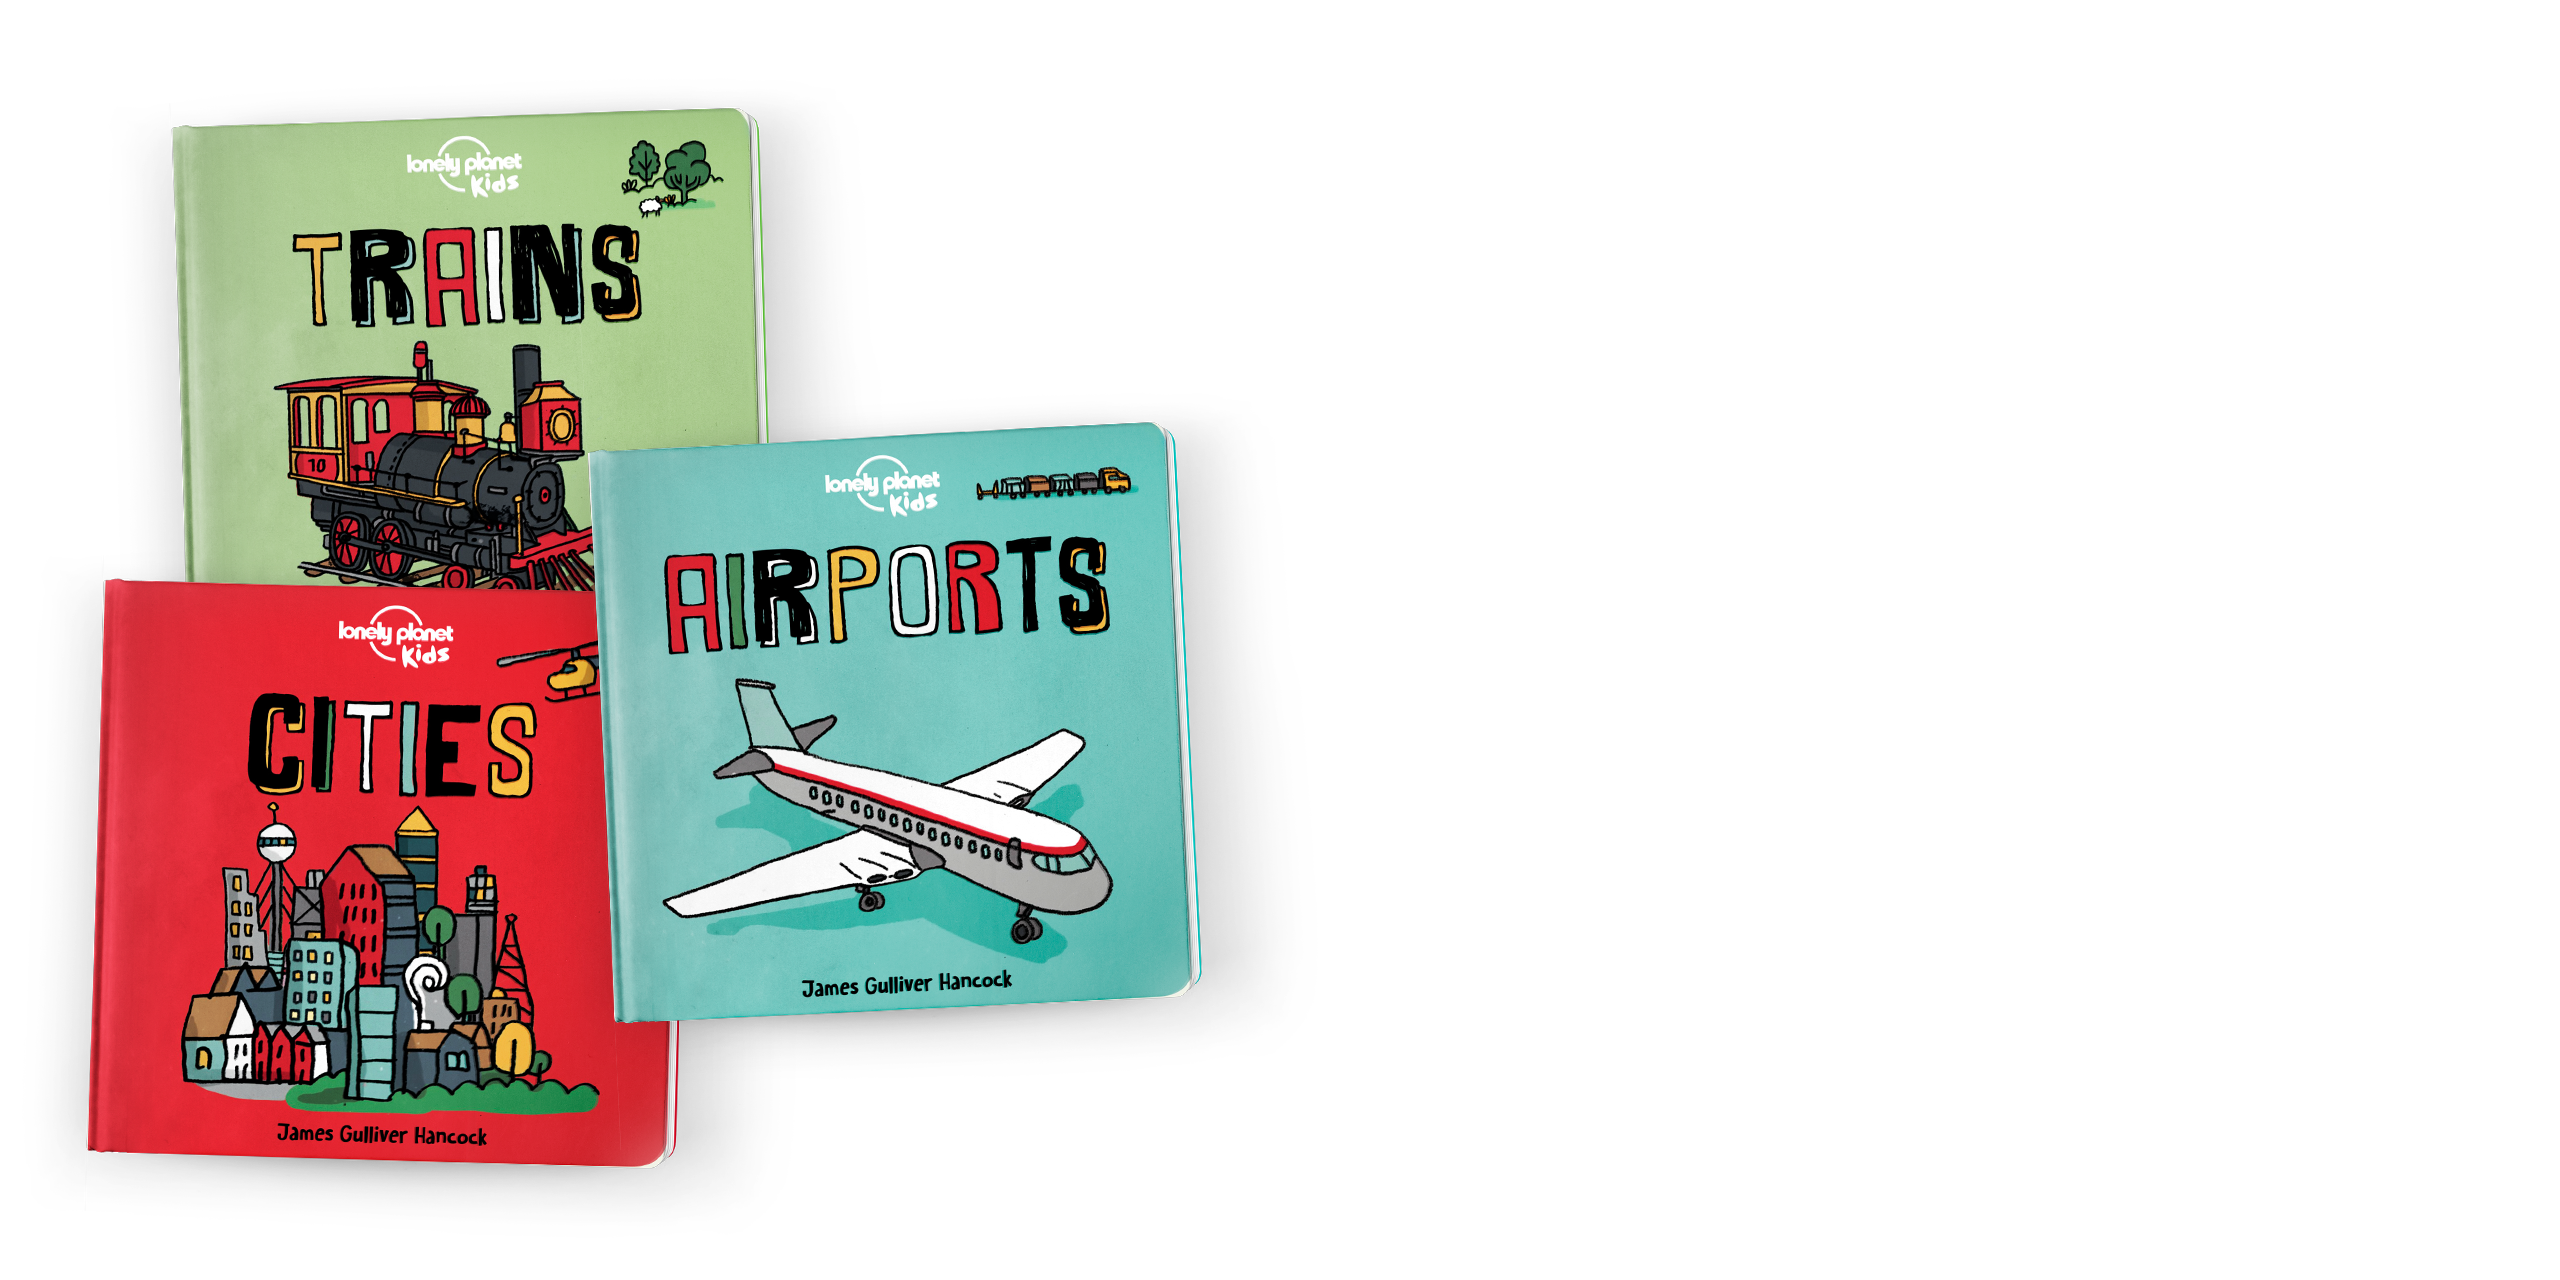 Lonely Planet's Board books for kids